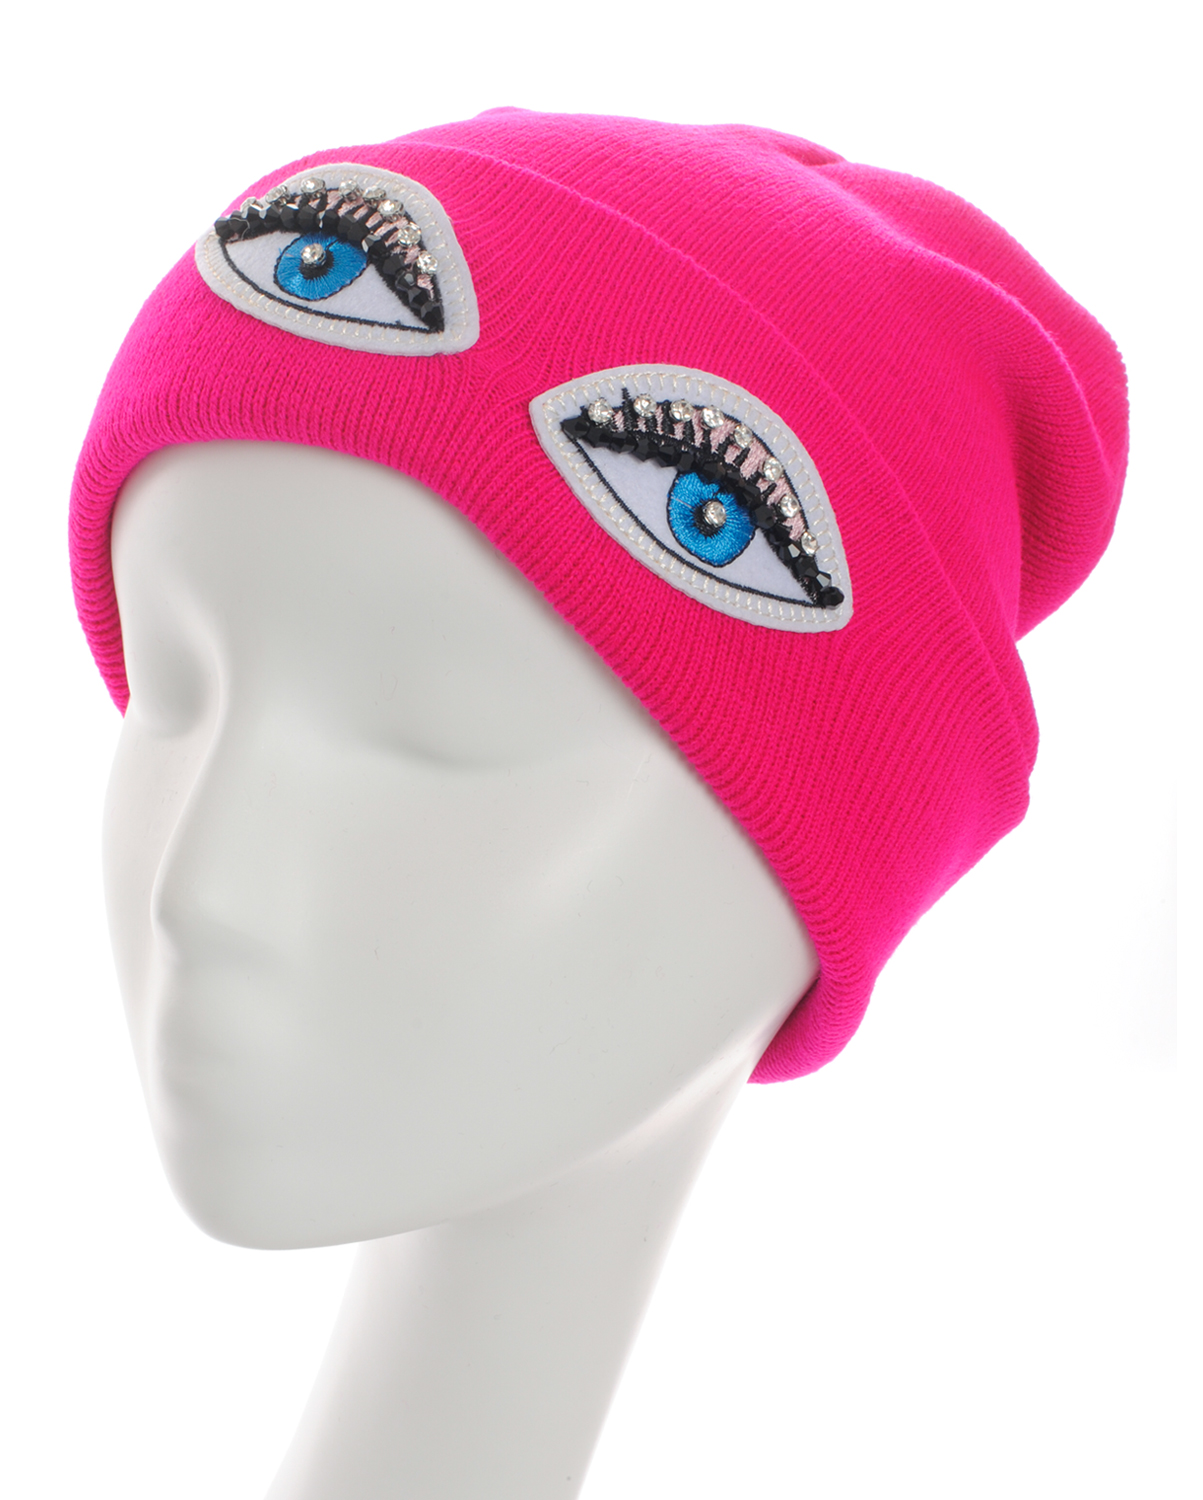 SS0644(FU)-wholesale-beanie-eyes-embroidered-rhinestones-black-beads-solid-color-knitted-stretch-fitted-acrylic(0).jpg